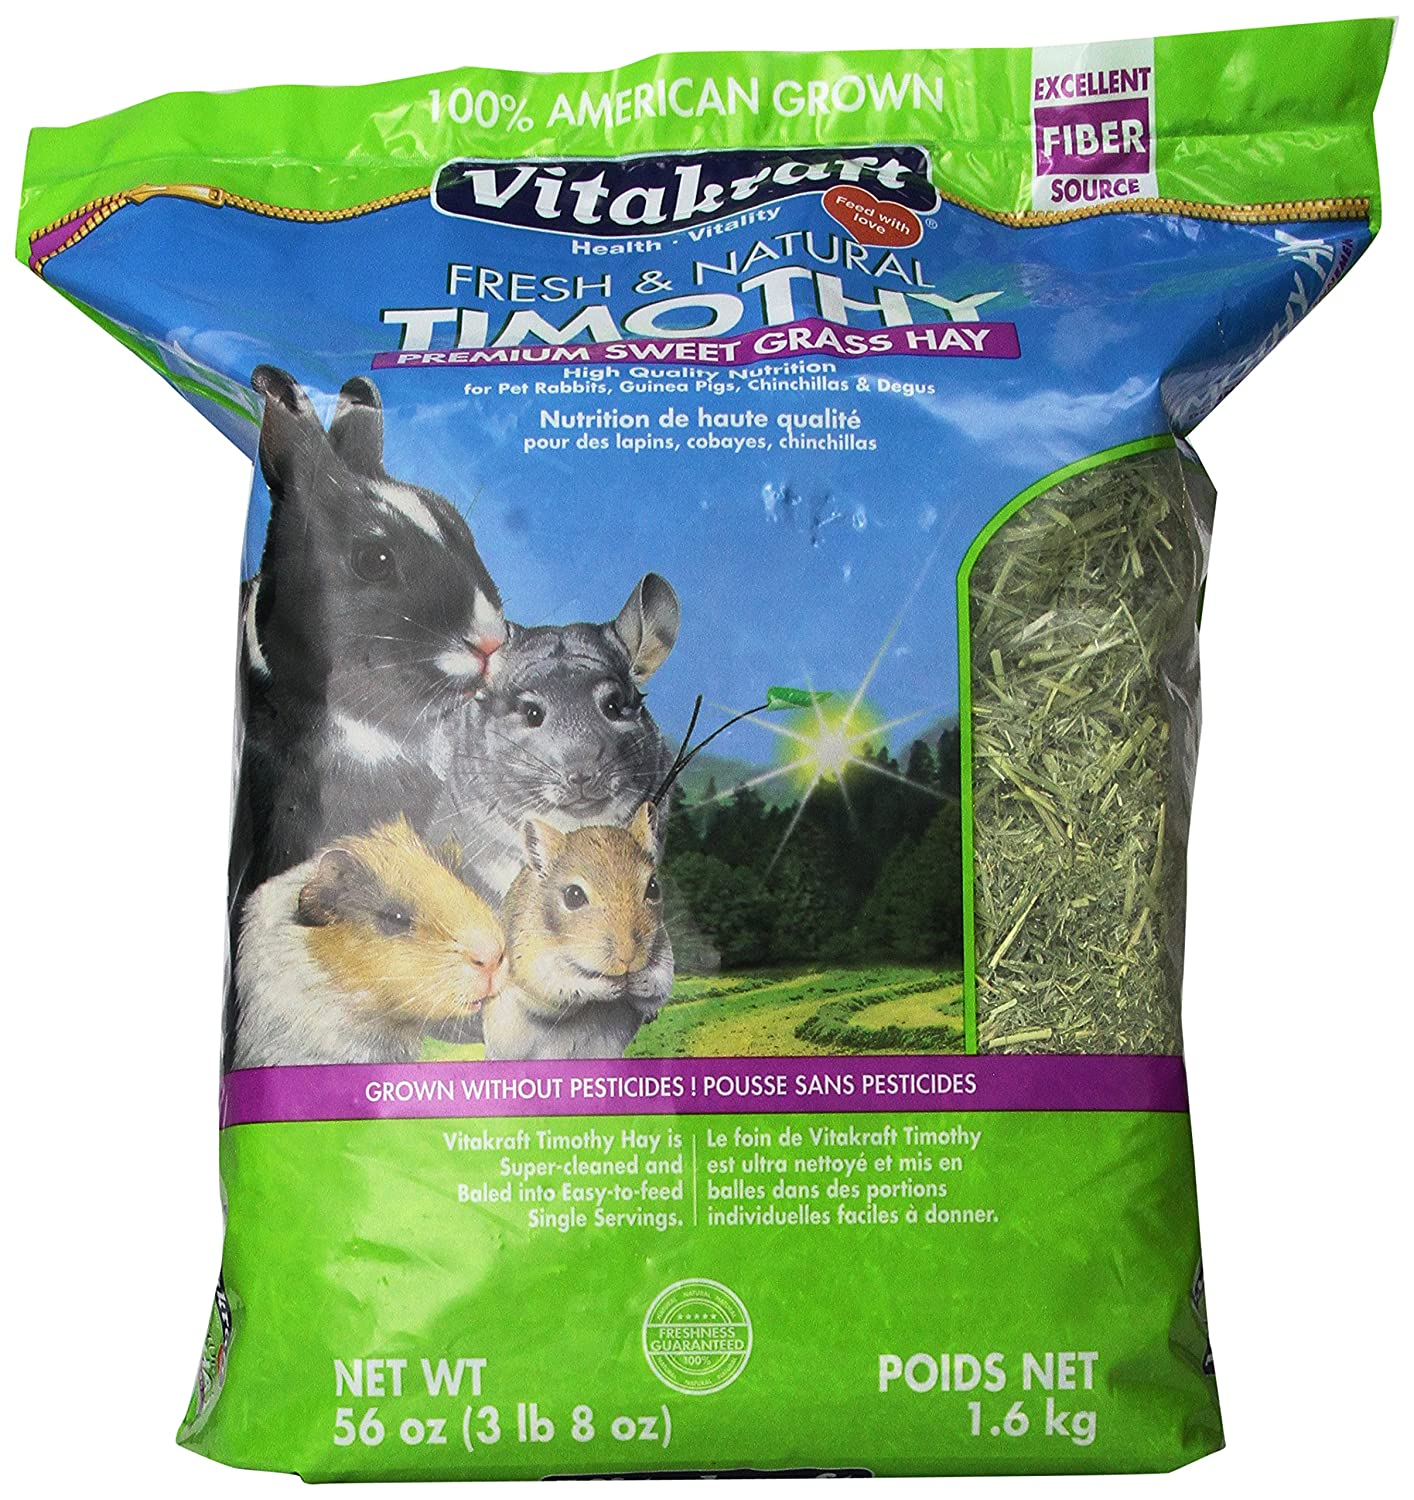 56-Ounce Vitakraft Timothy Hay, Premium Sweet Grass Hay, 100-Percent American Grown, 56-Ounce Resealable Bag